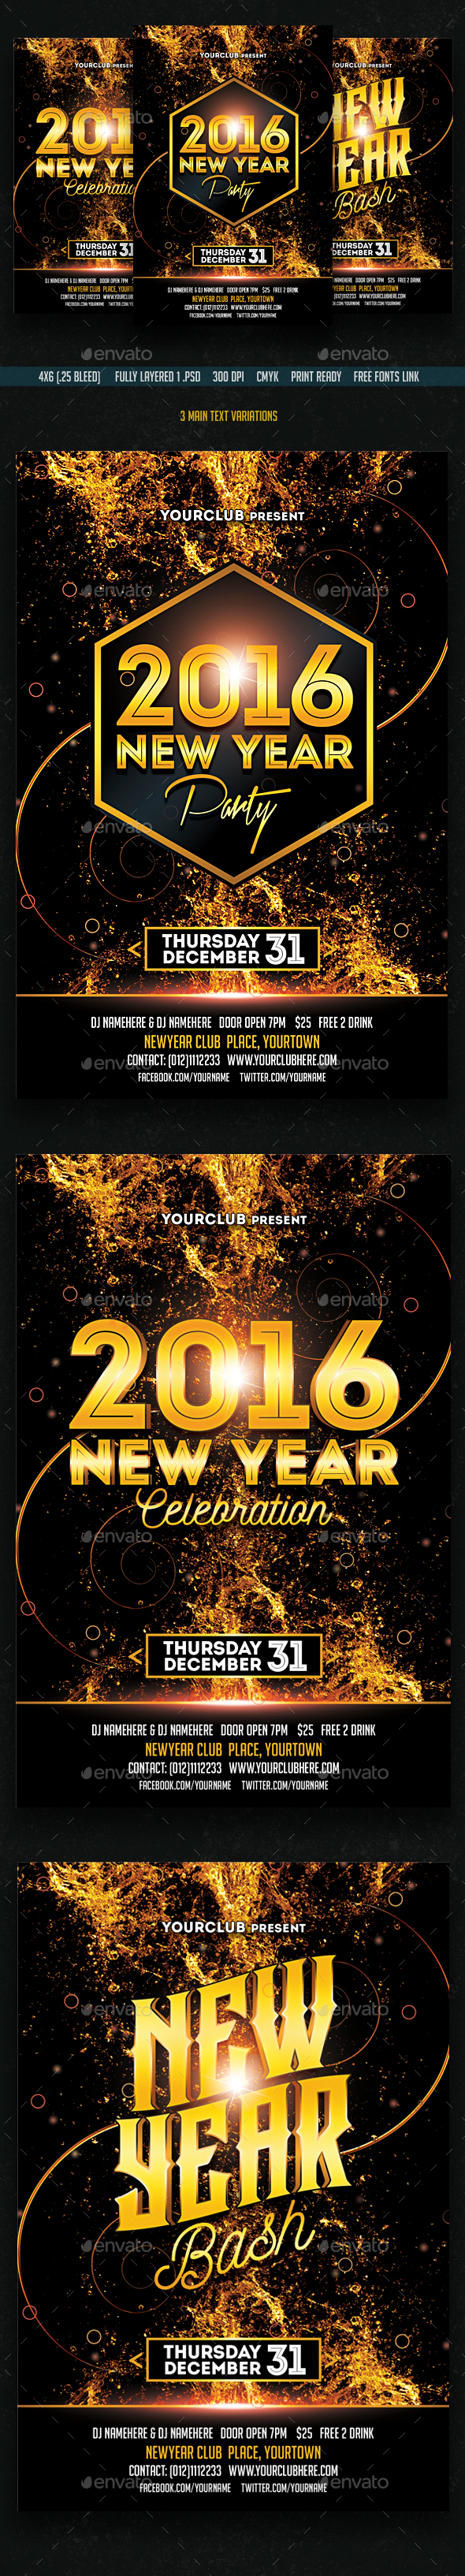 New Year Party/Bash/Celebration Flyer Flyer - Clubs & Parties Events